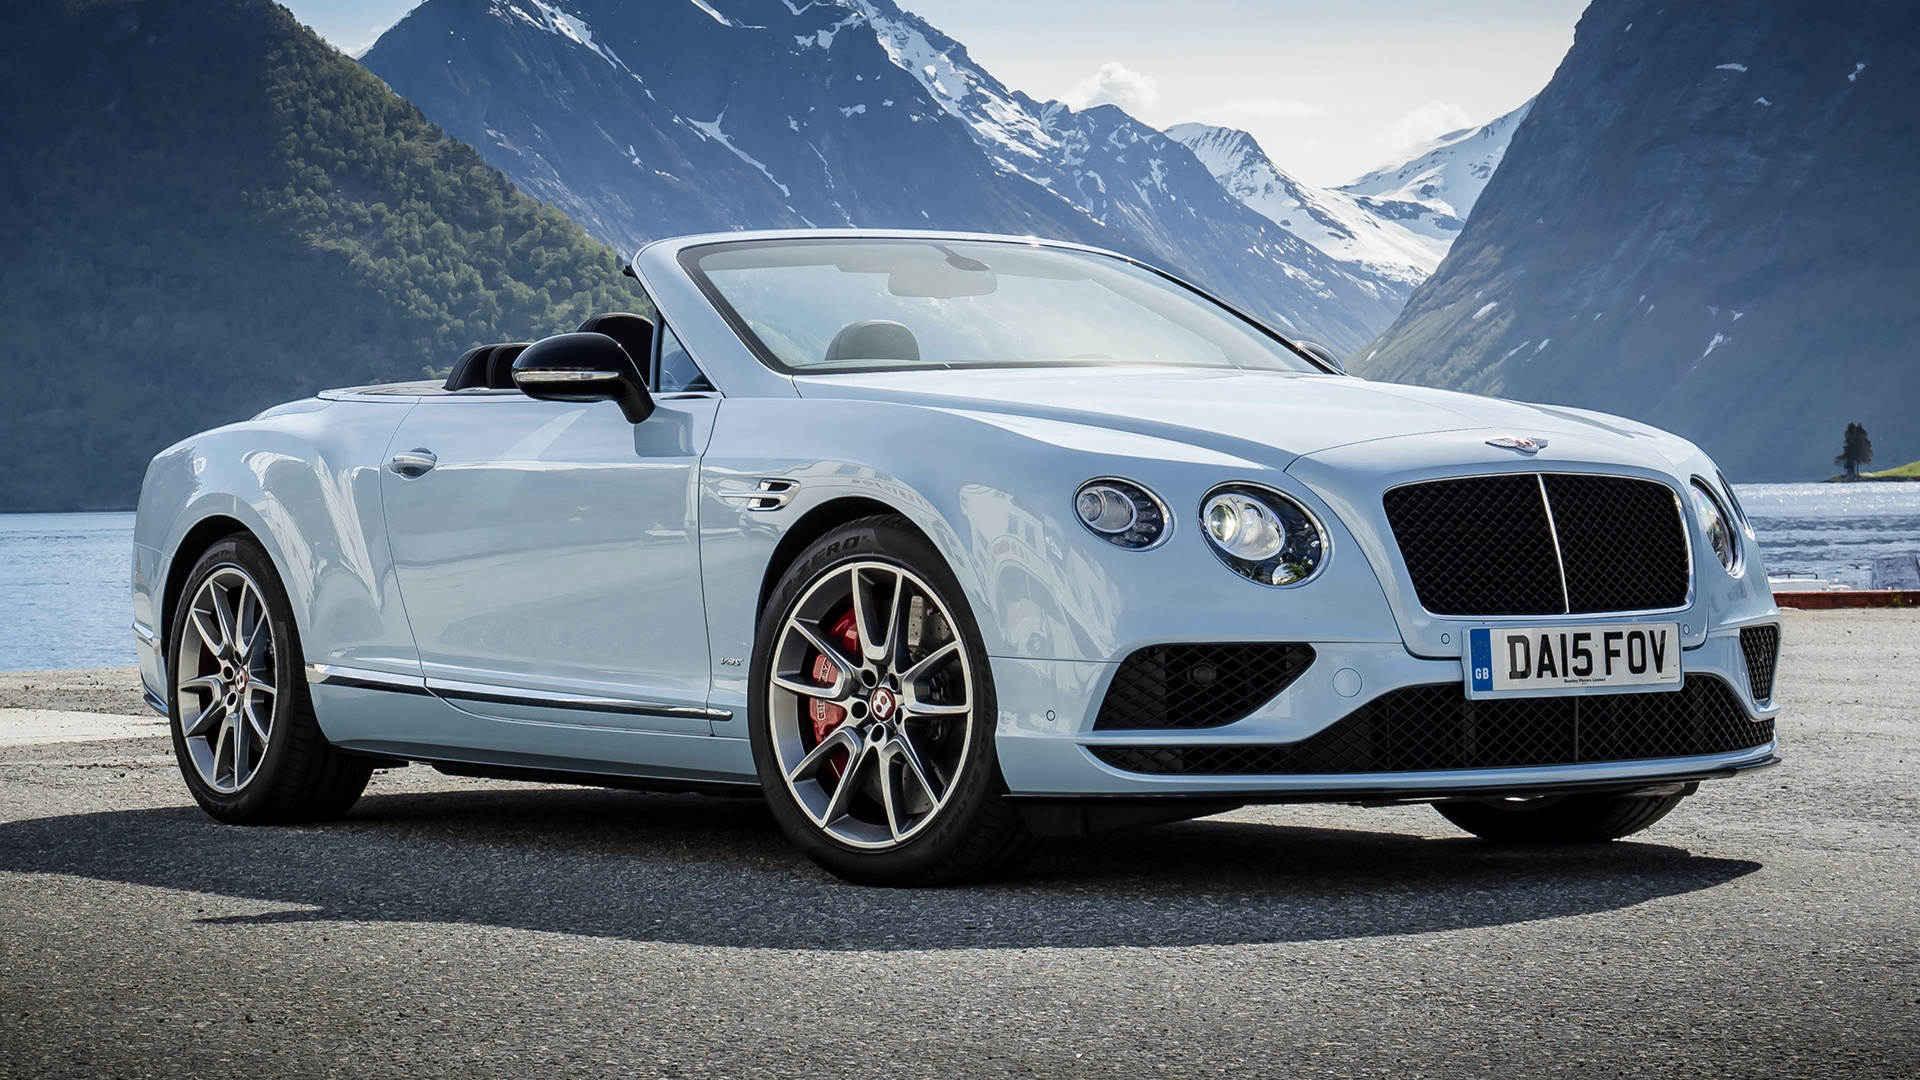 Bentley Continental GT V8 S Convertible 2015 Wallpapers and HD